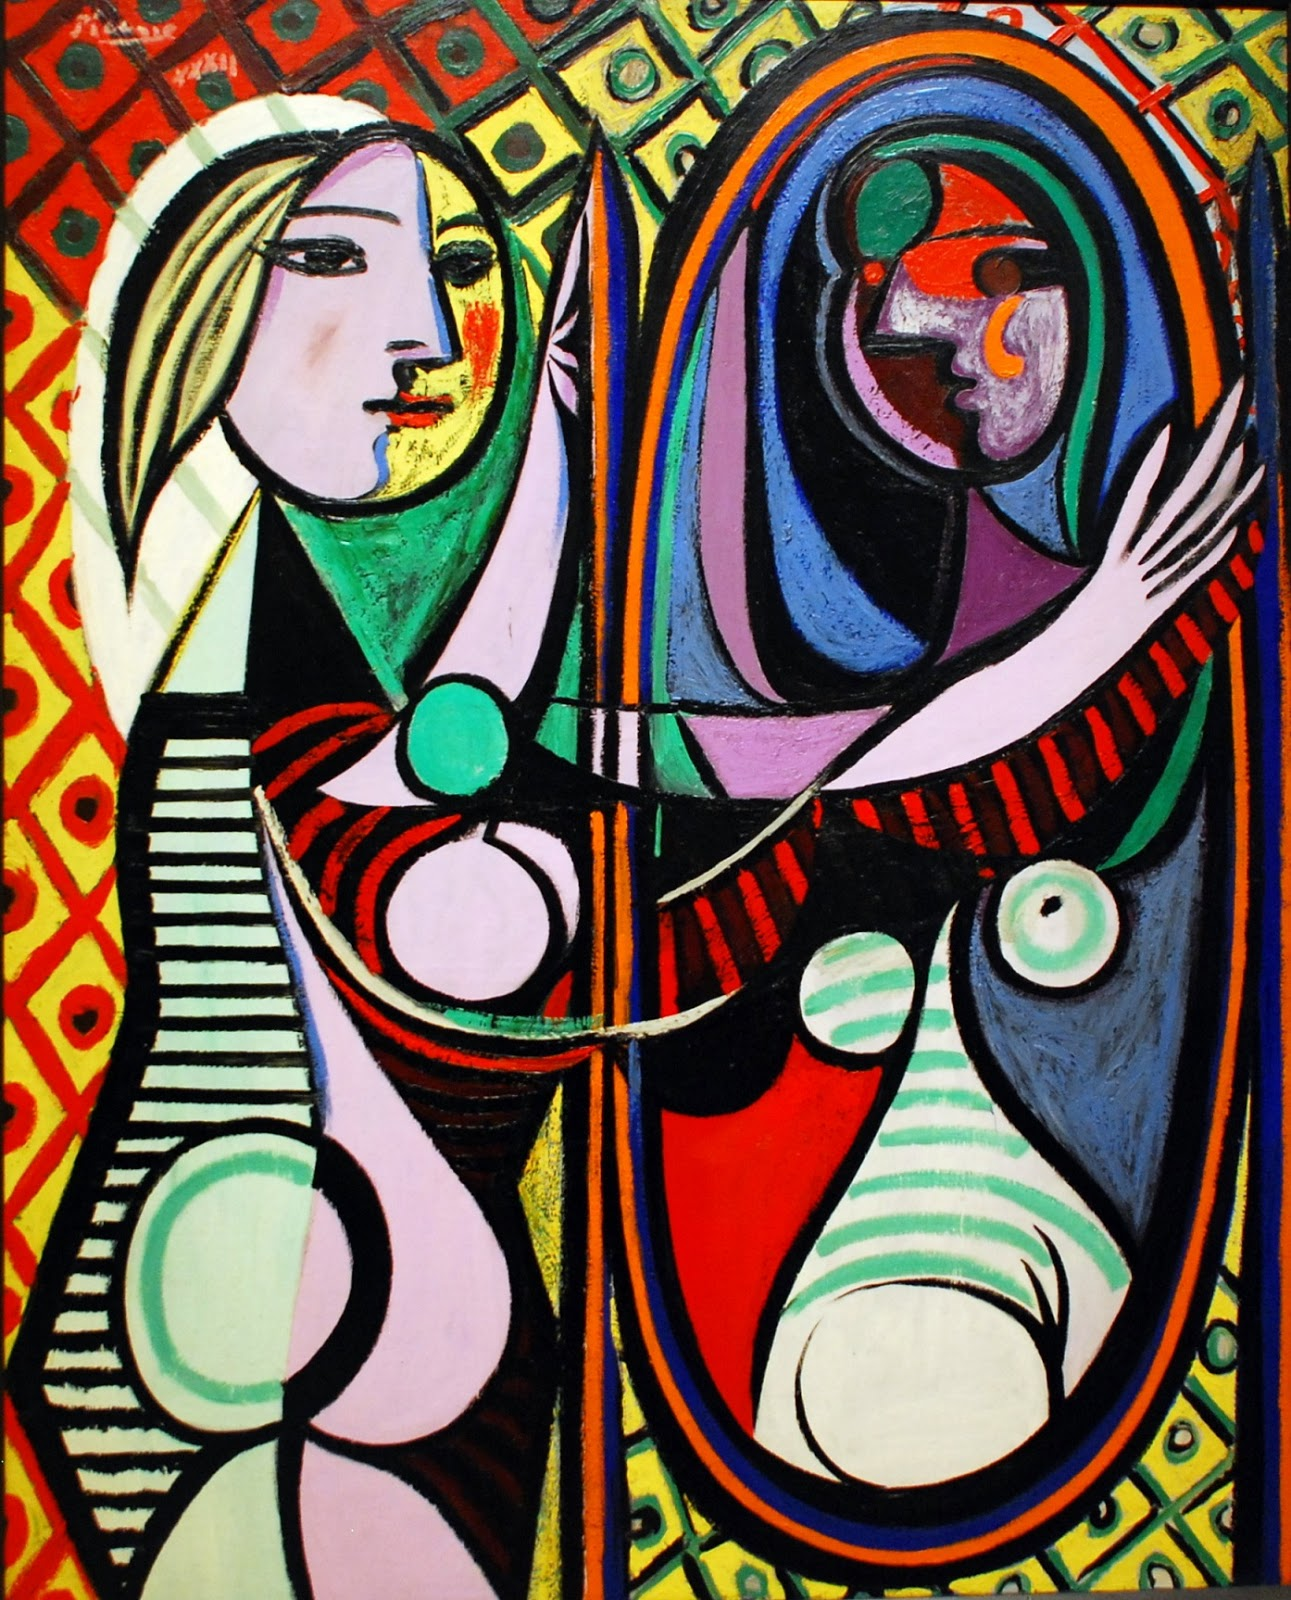 niceday s wonderful imaginary museum picasso pablo picasso pablo